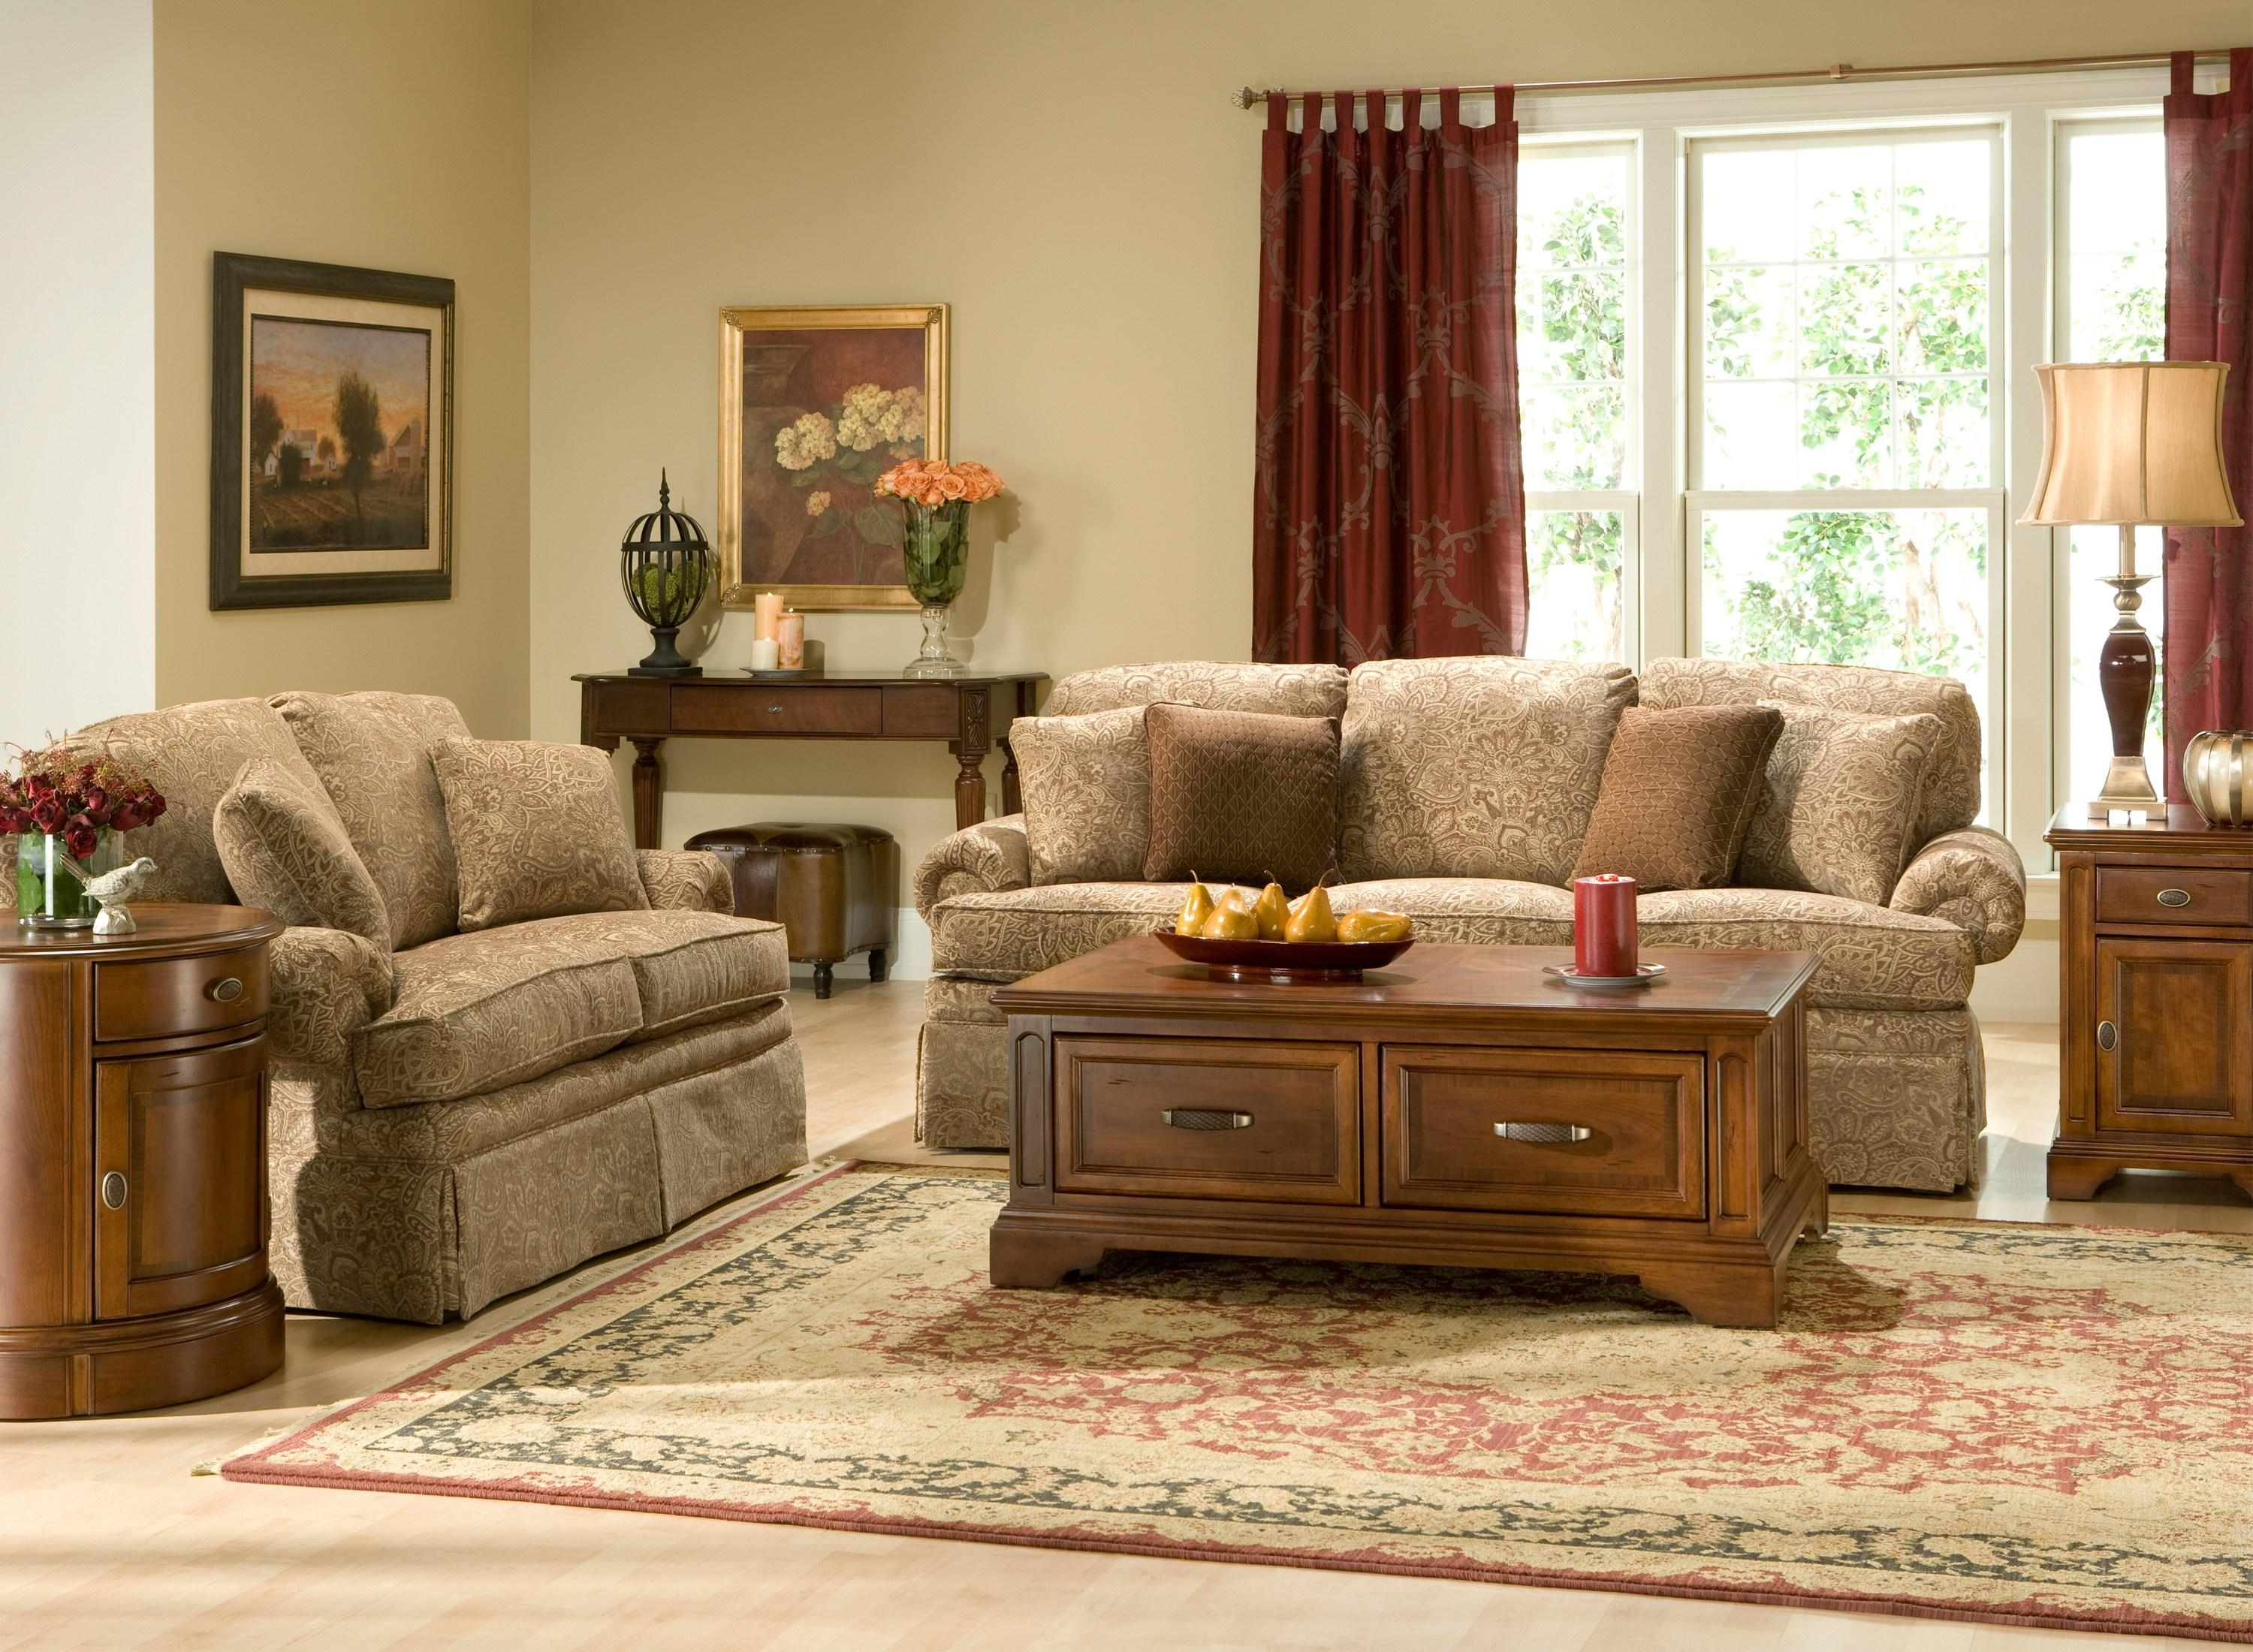 Raymour And Flanigans Lauren Sofa Setclayton Marcus | Great Throughout Clayton Marcus Sofas (Image 11 of 20)